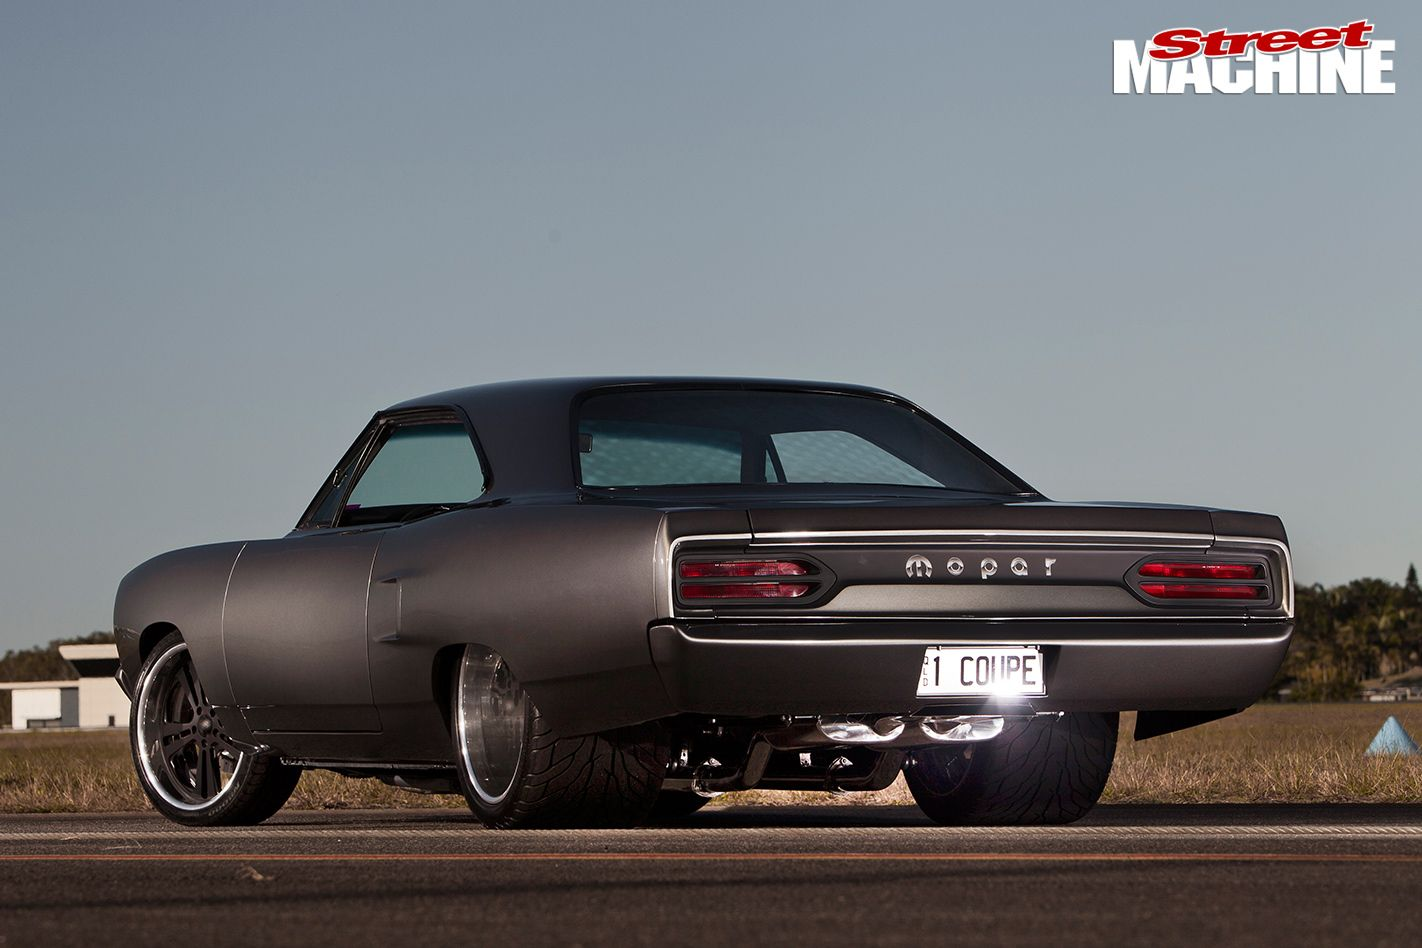 500 Cube 1970 Plymouth Satellite Exterior Muscle Cars